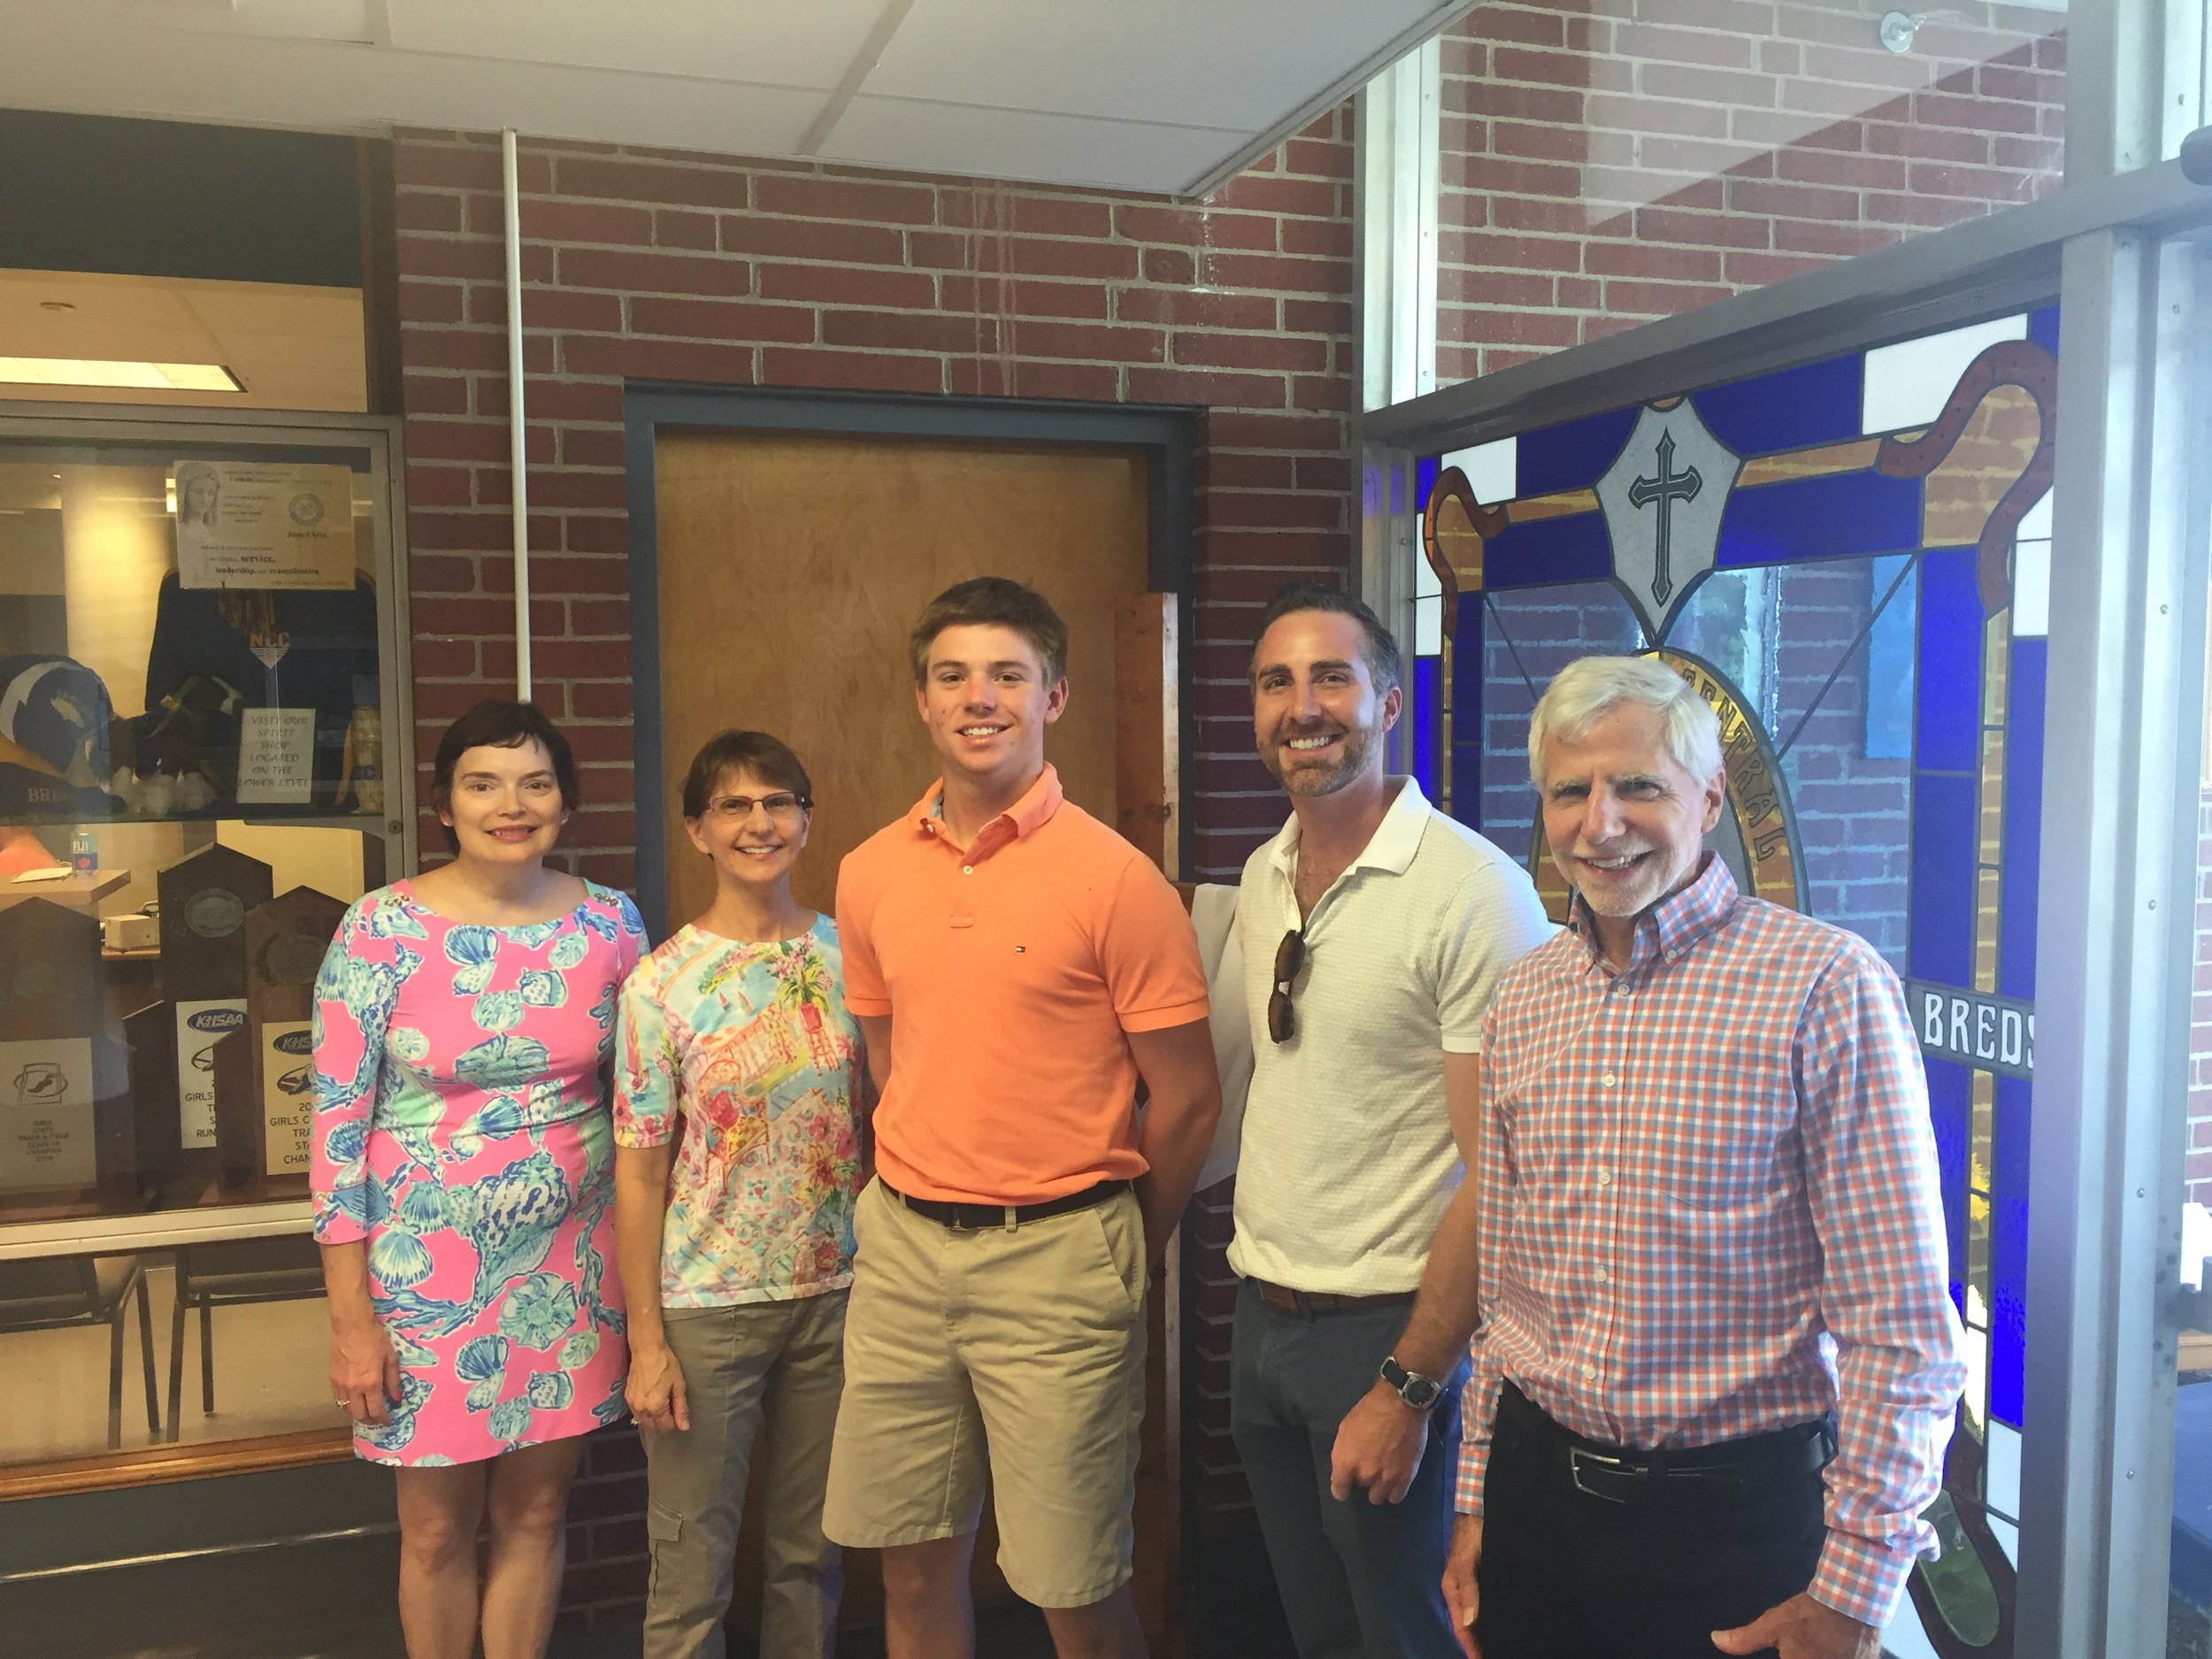 NCCHS Senior Robby Shondel recipient of Len and Charlotte GeigerMemorial Scholarship.